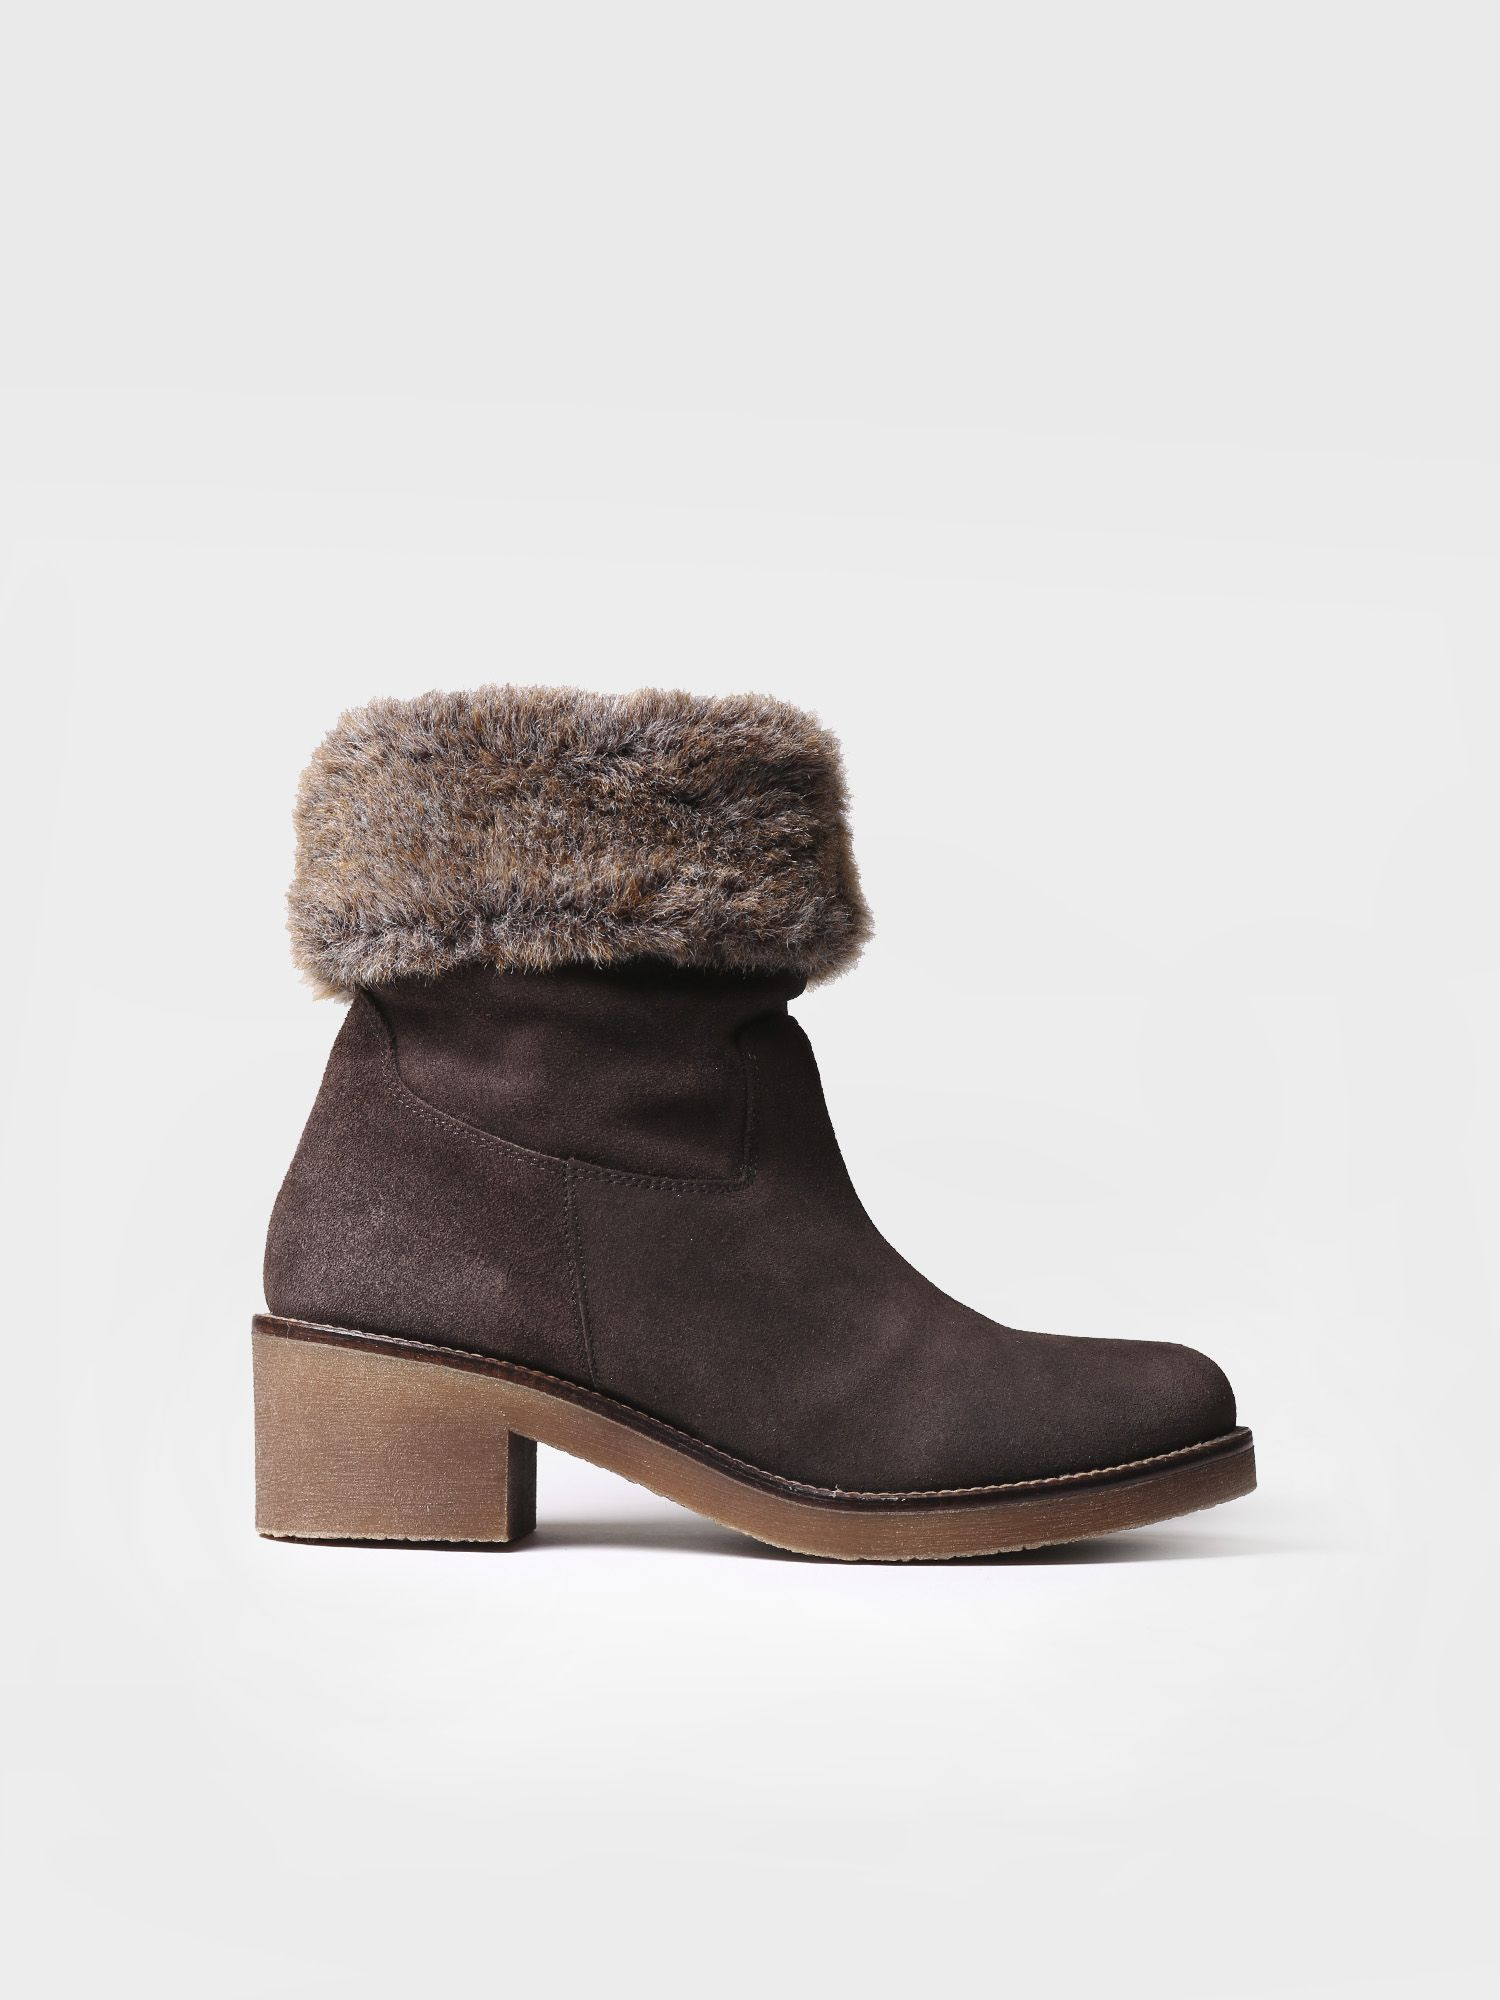 Mid heel bootie in brown suede - PECOS-SYF